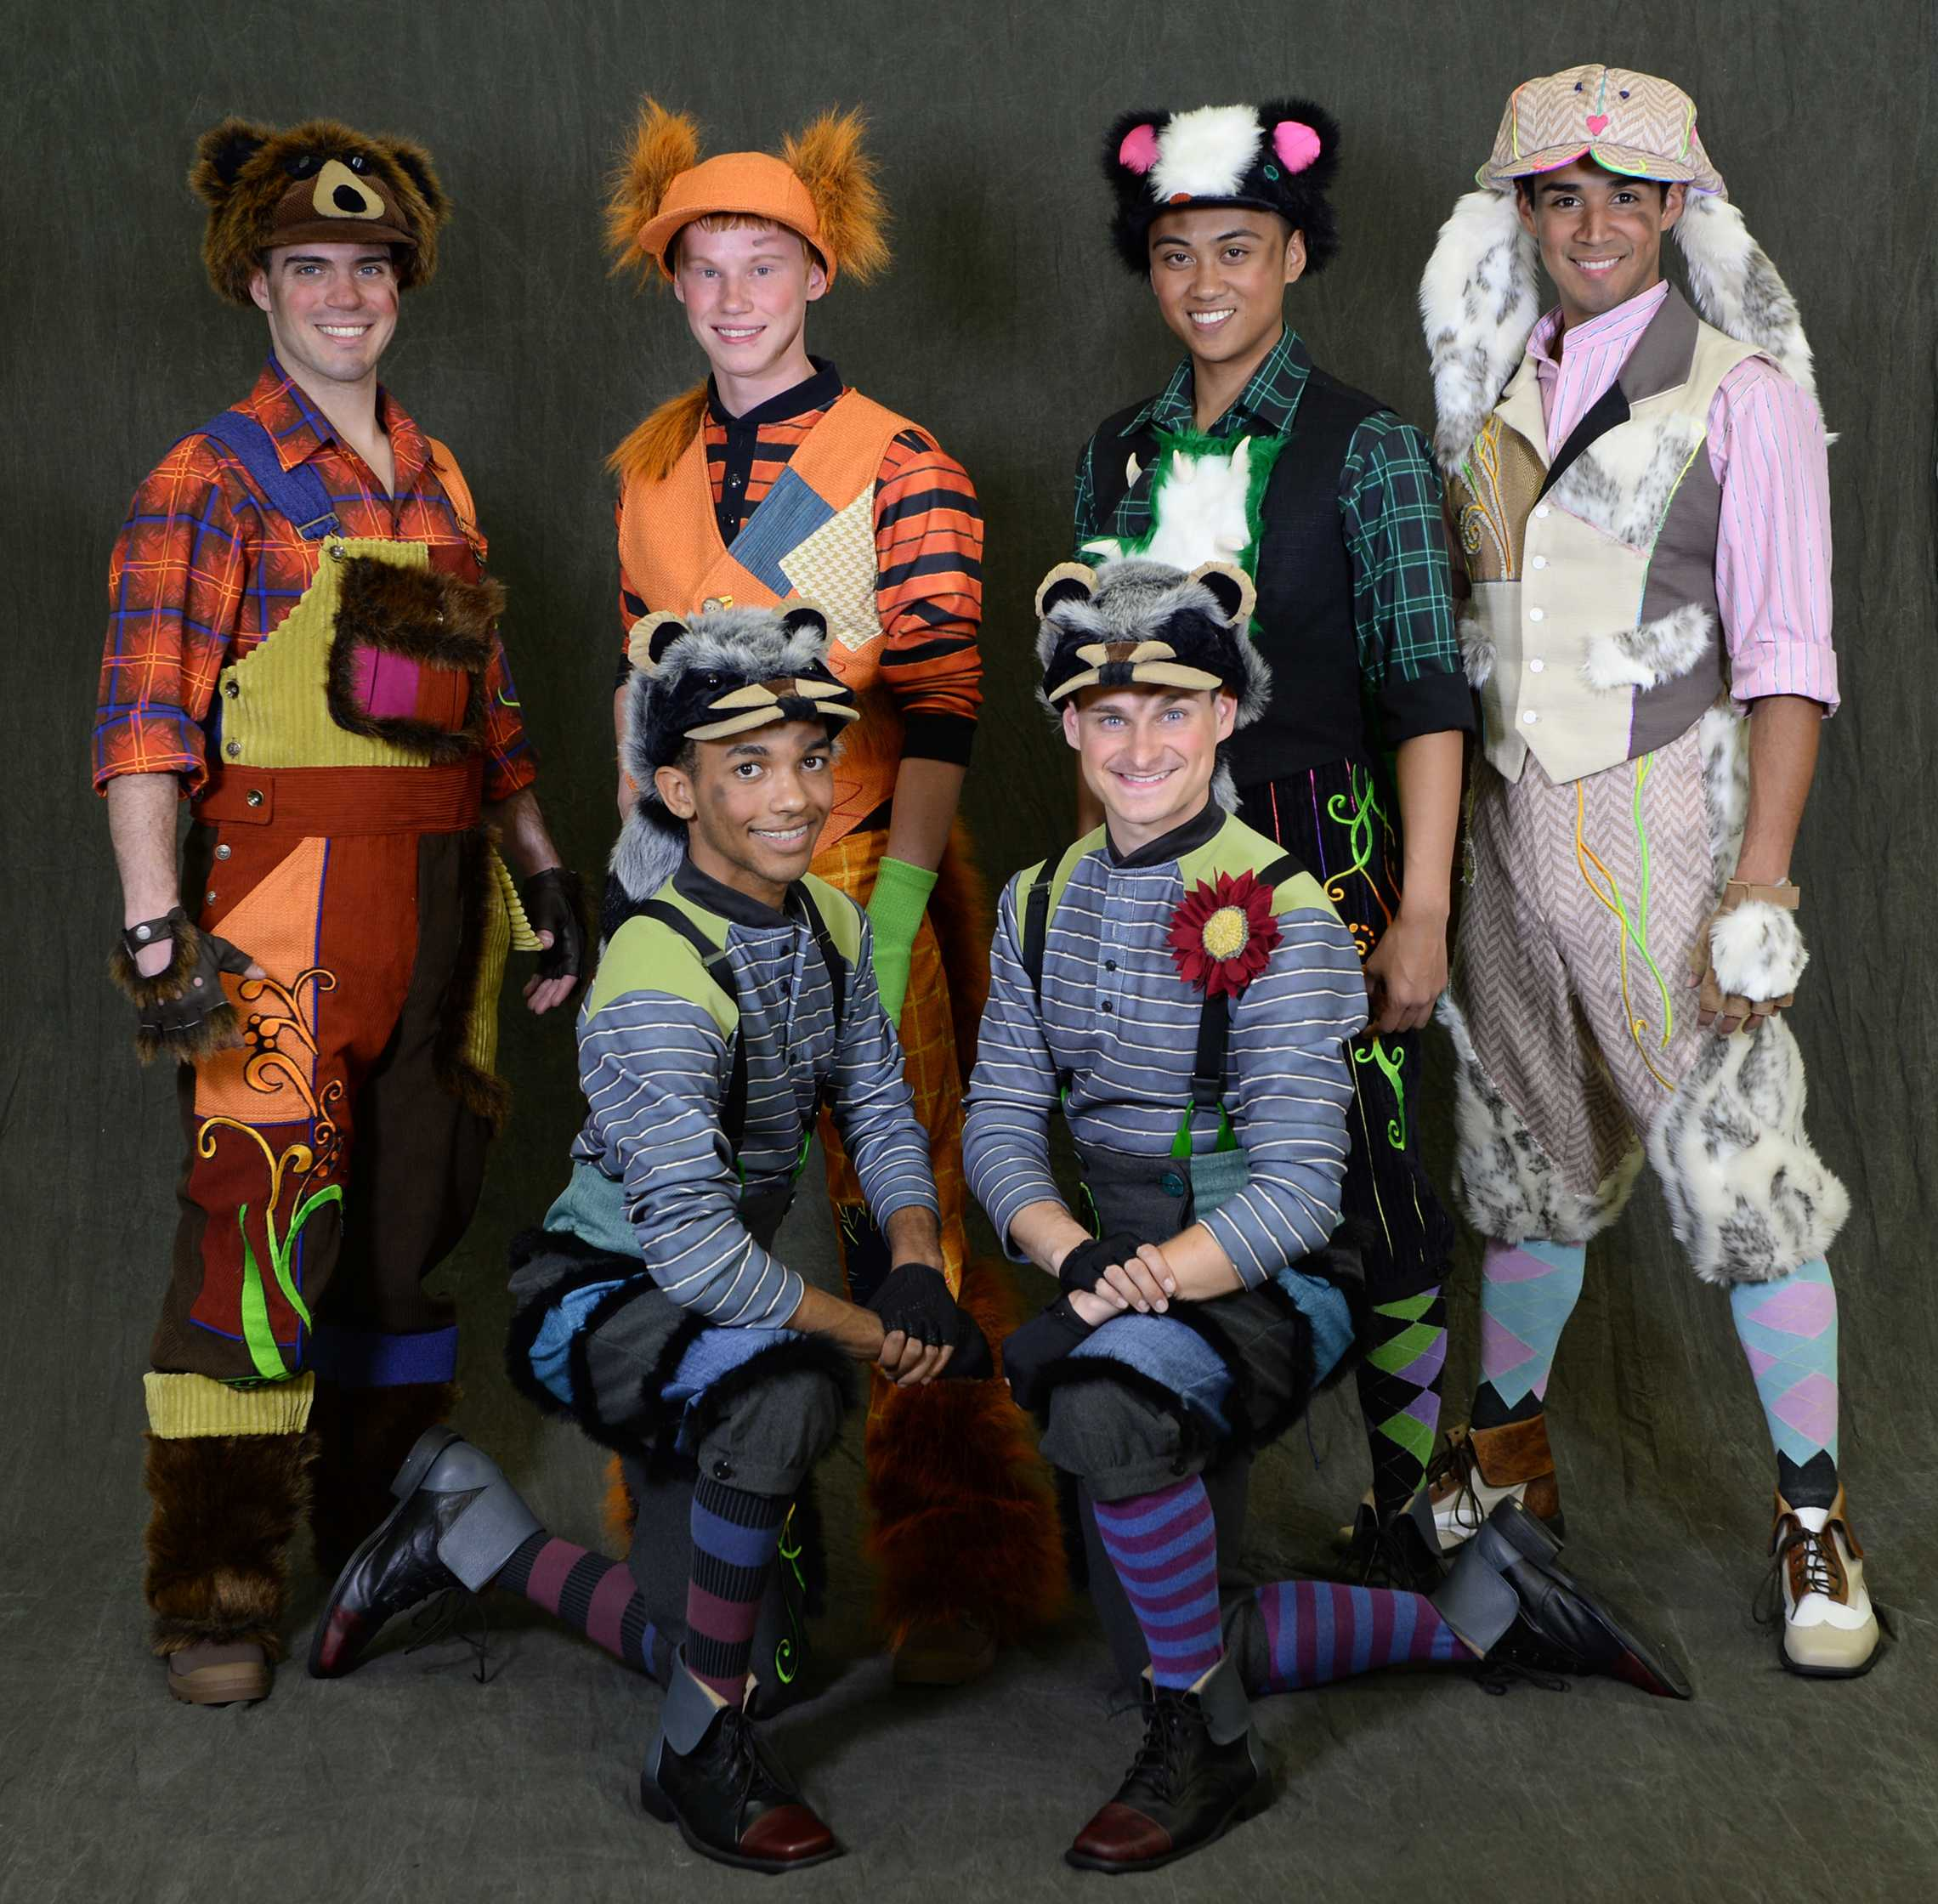 Disney Festival of Fantasy Parade Costumes - Lost Boys